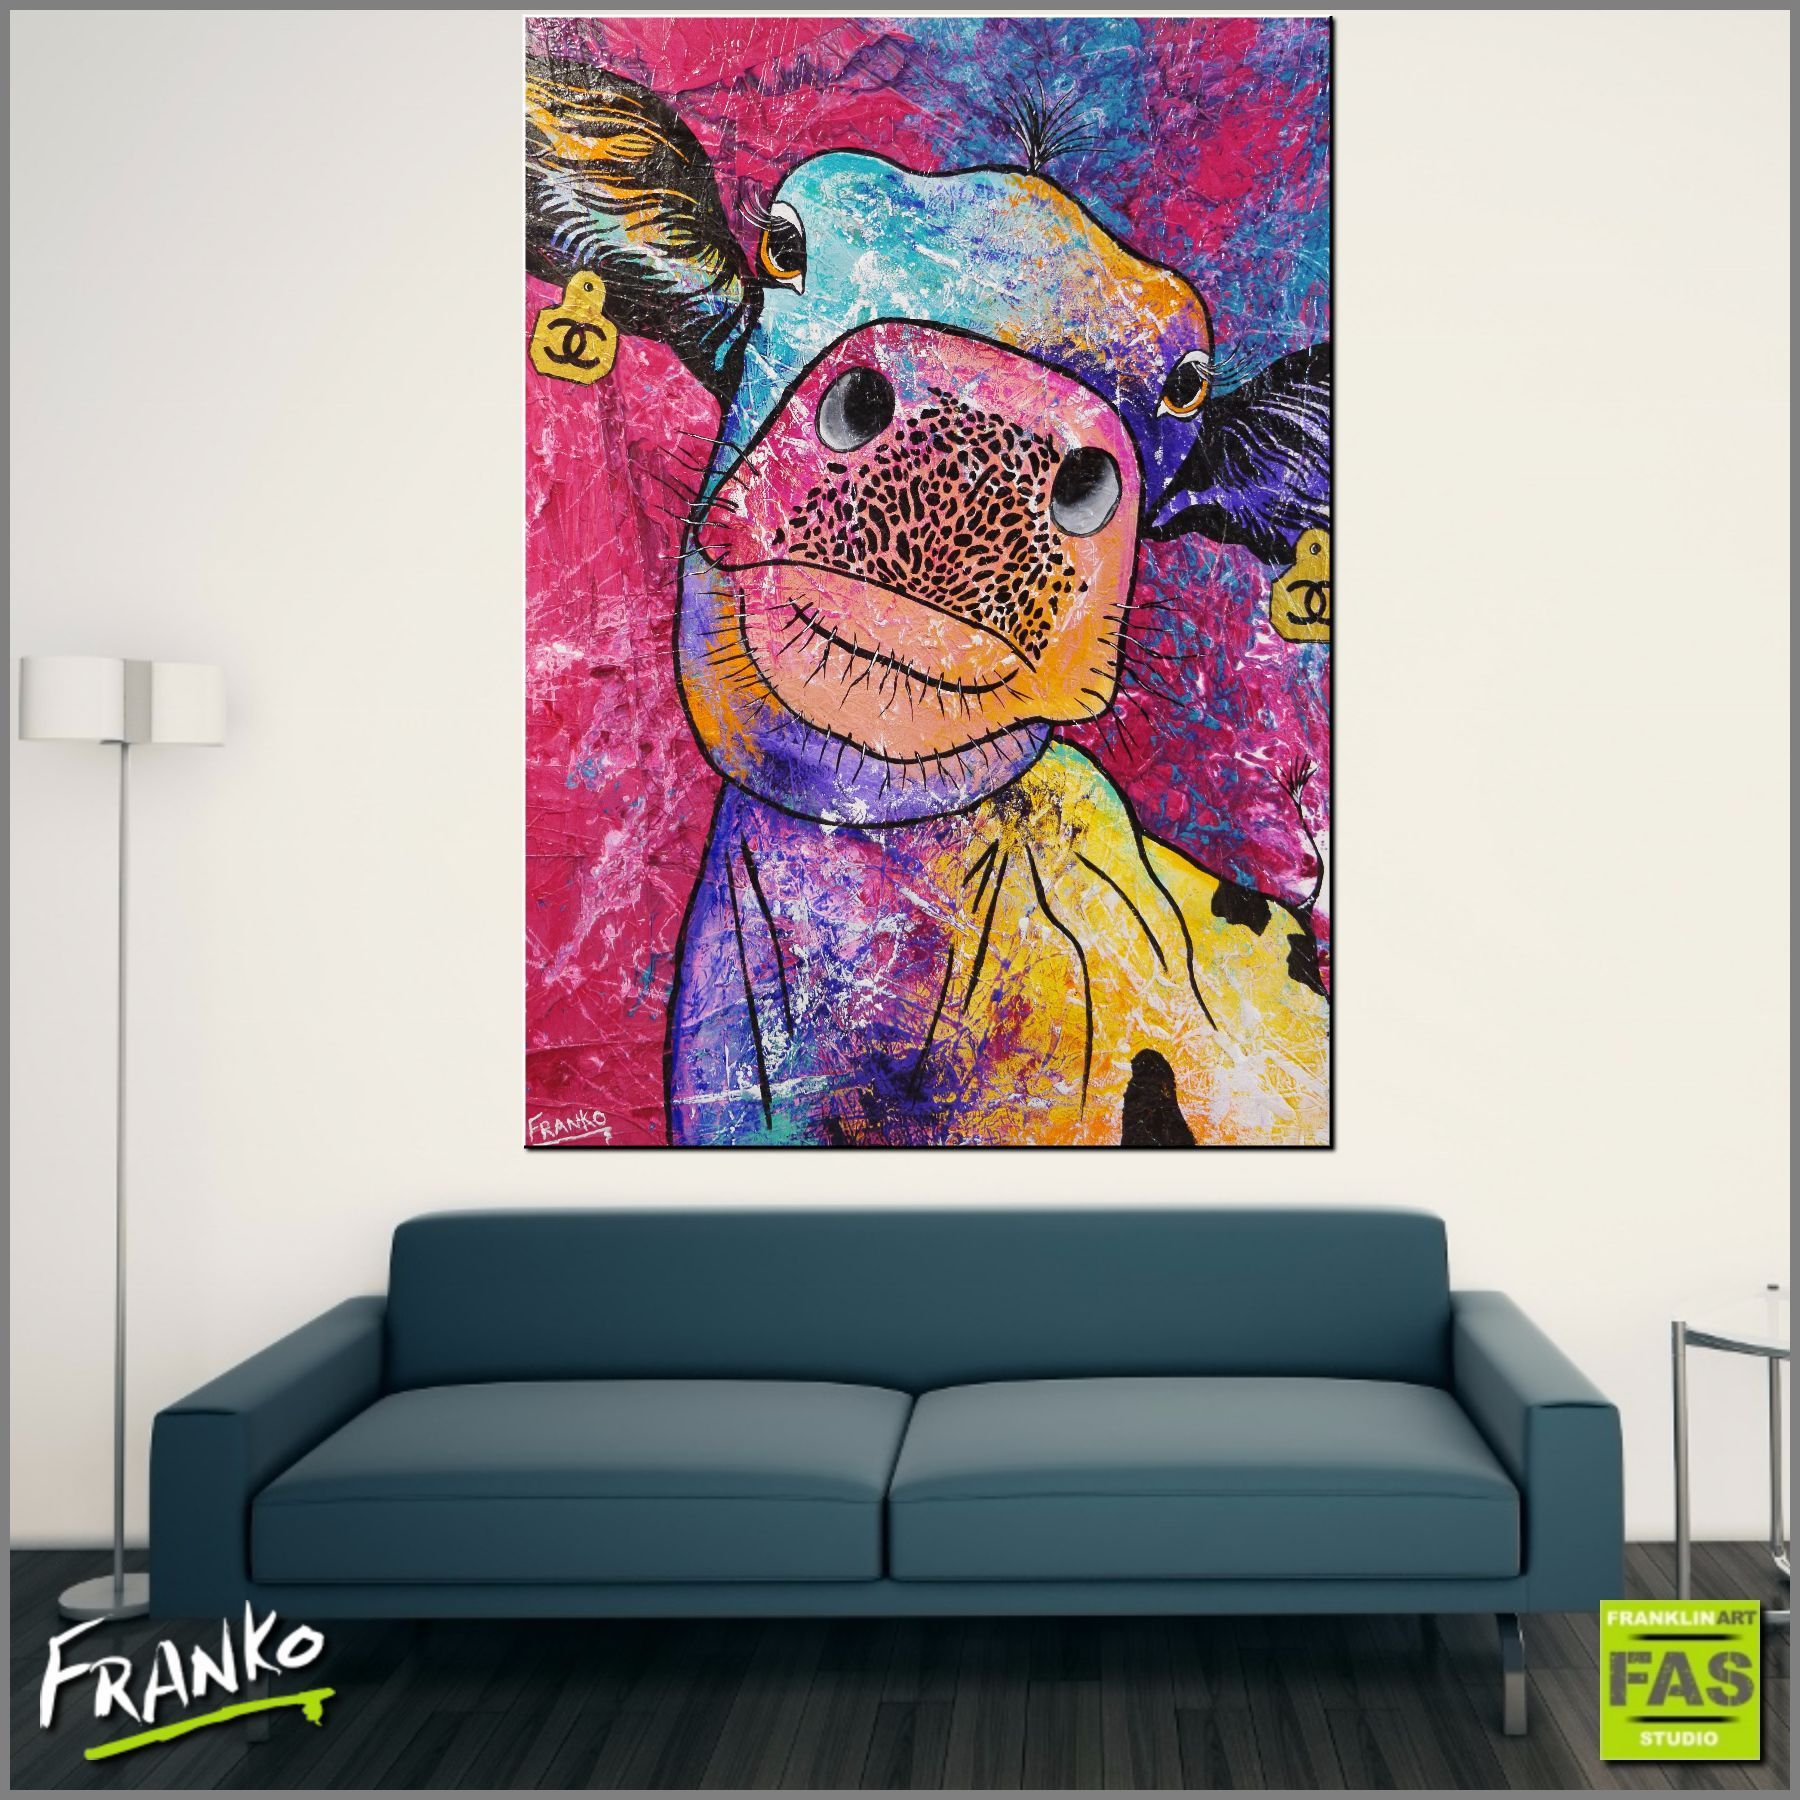 tagged-cc-coco-140cm-x-100cm-cow-pop-art-painting-franklin-art-studio-franko-artist